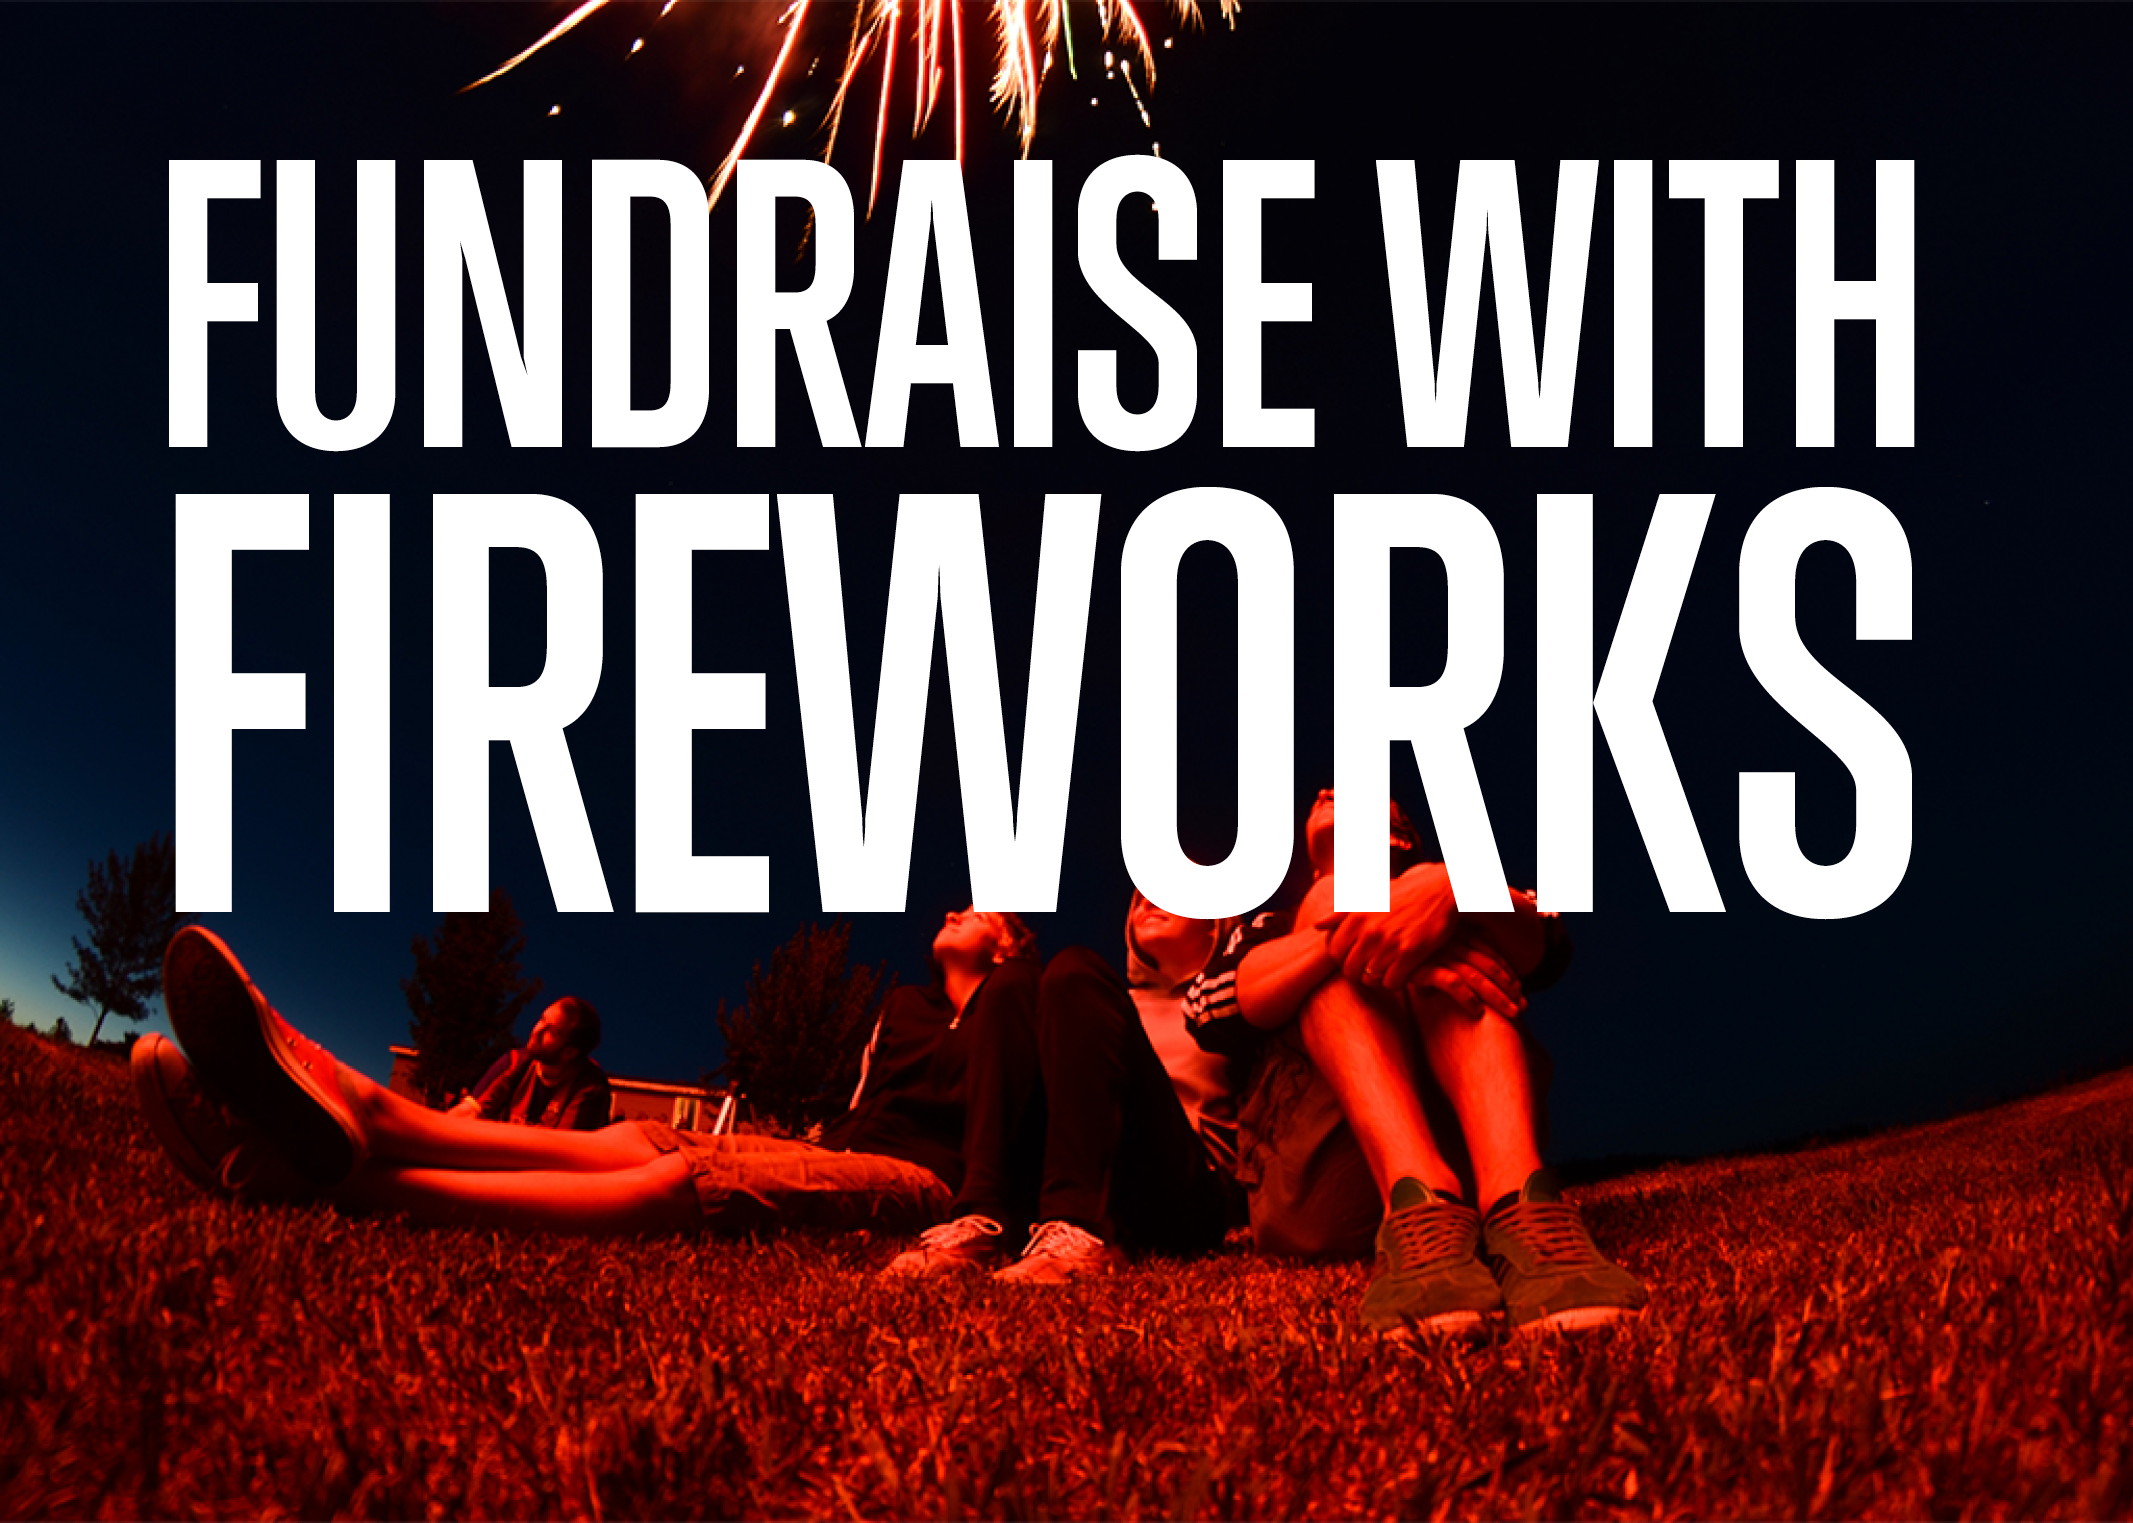 Fundraising With Fireworks